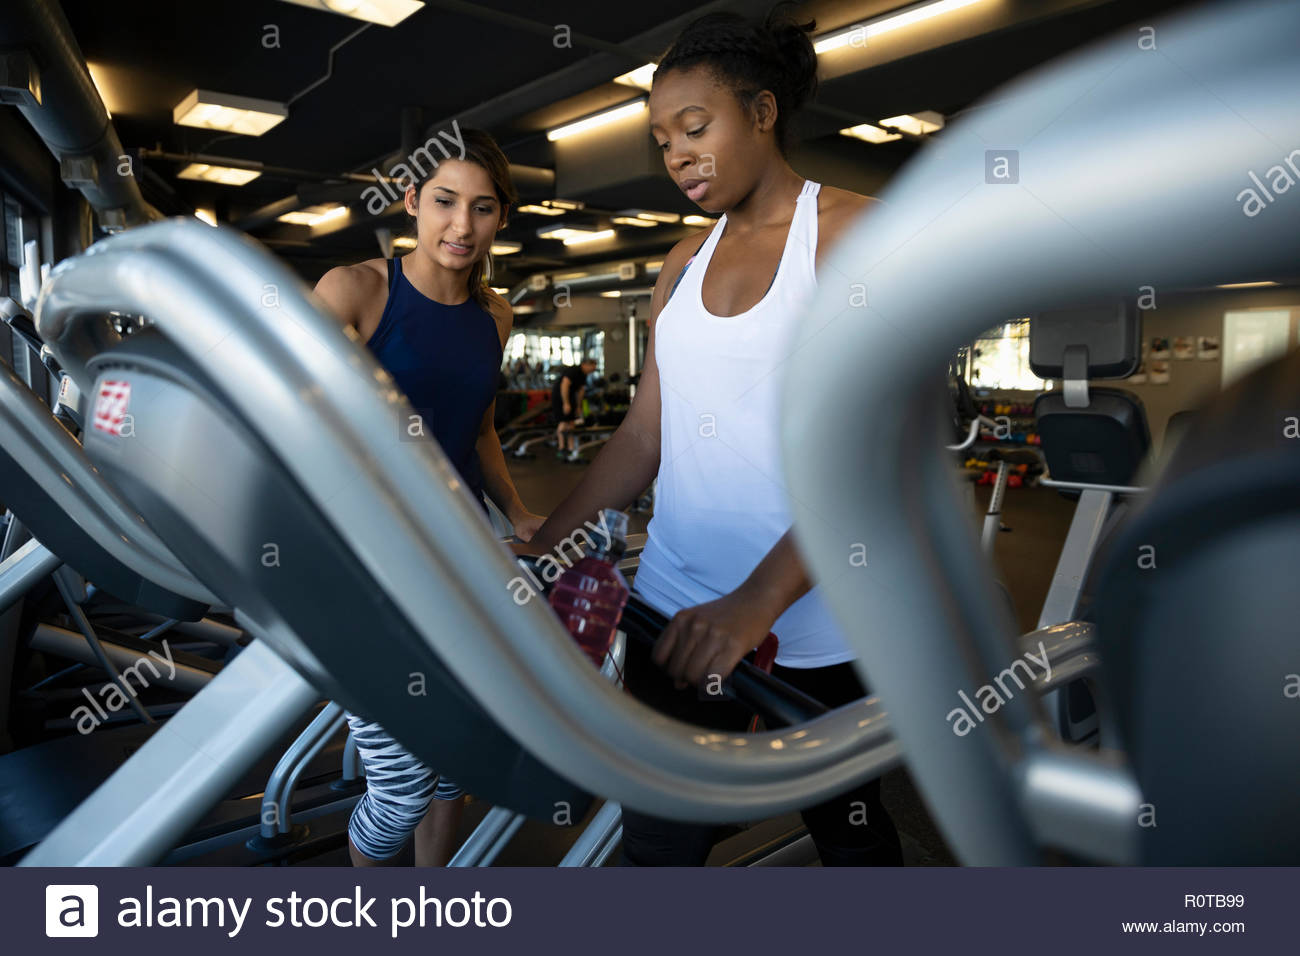 Female personal trainer guiding woman using treadmill in gym - Stock Image